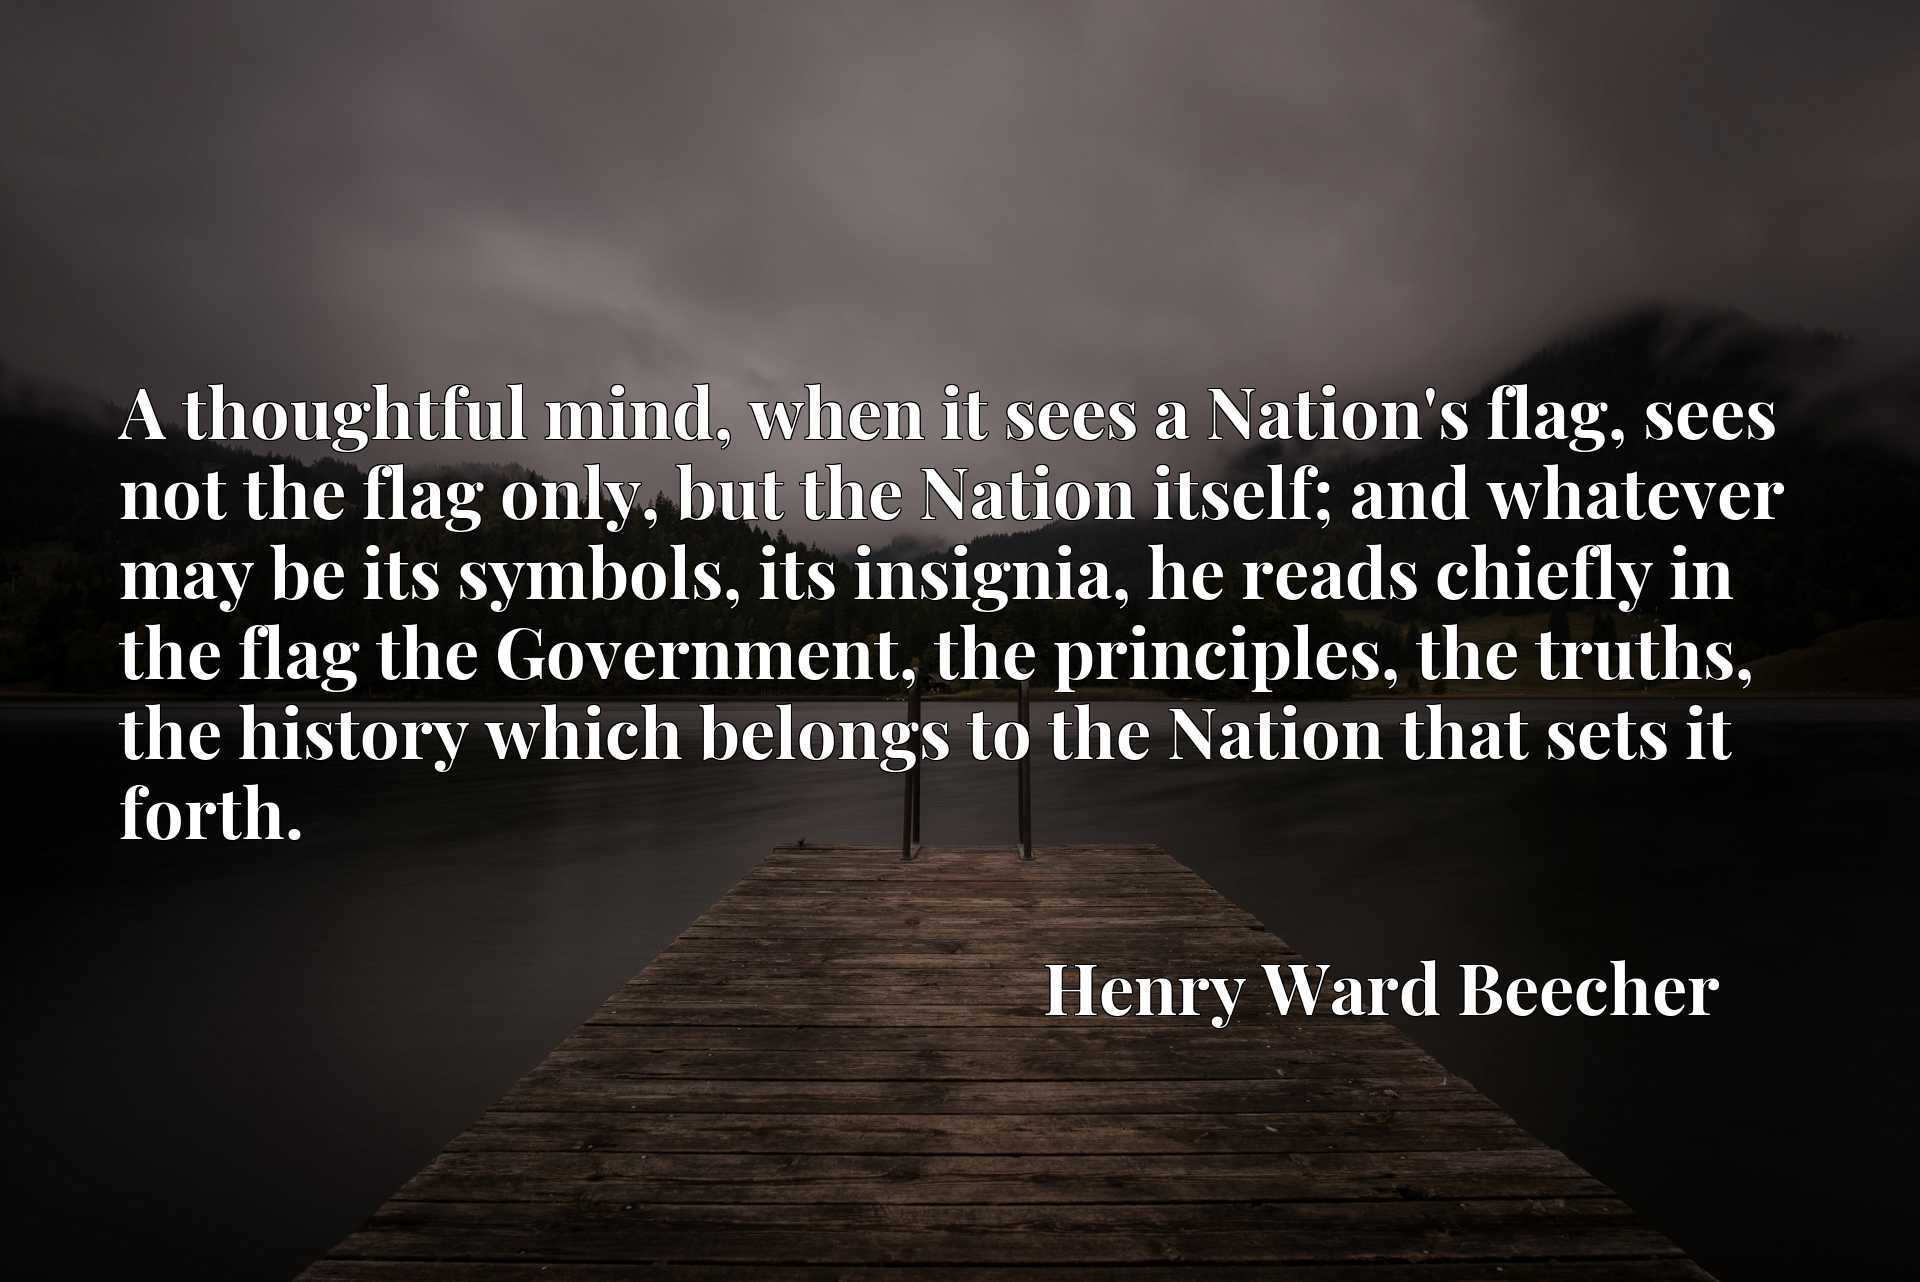 A thoughtful mind, when it sees a Nation's flag, sees not the flag only, but the Nation itself; and whatever may be its symbols, its insignia, he reads chiefly in the flag the Government, the principles, the truths, the history which belongs to the Nation that sets it forth.